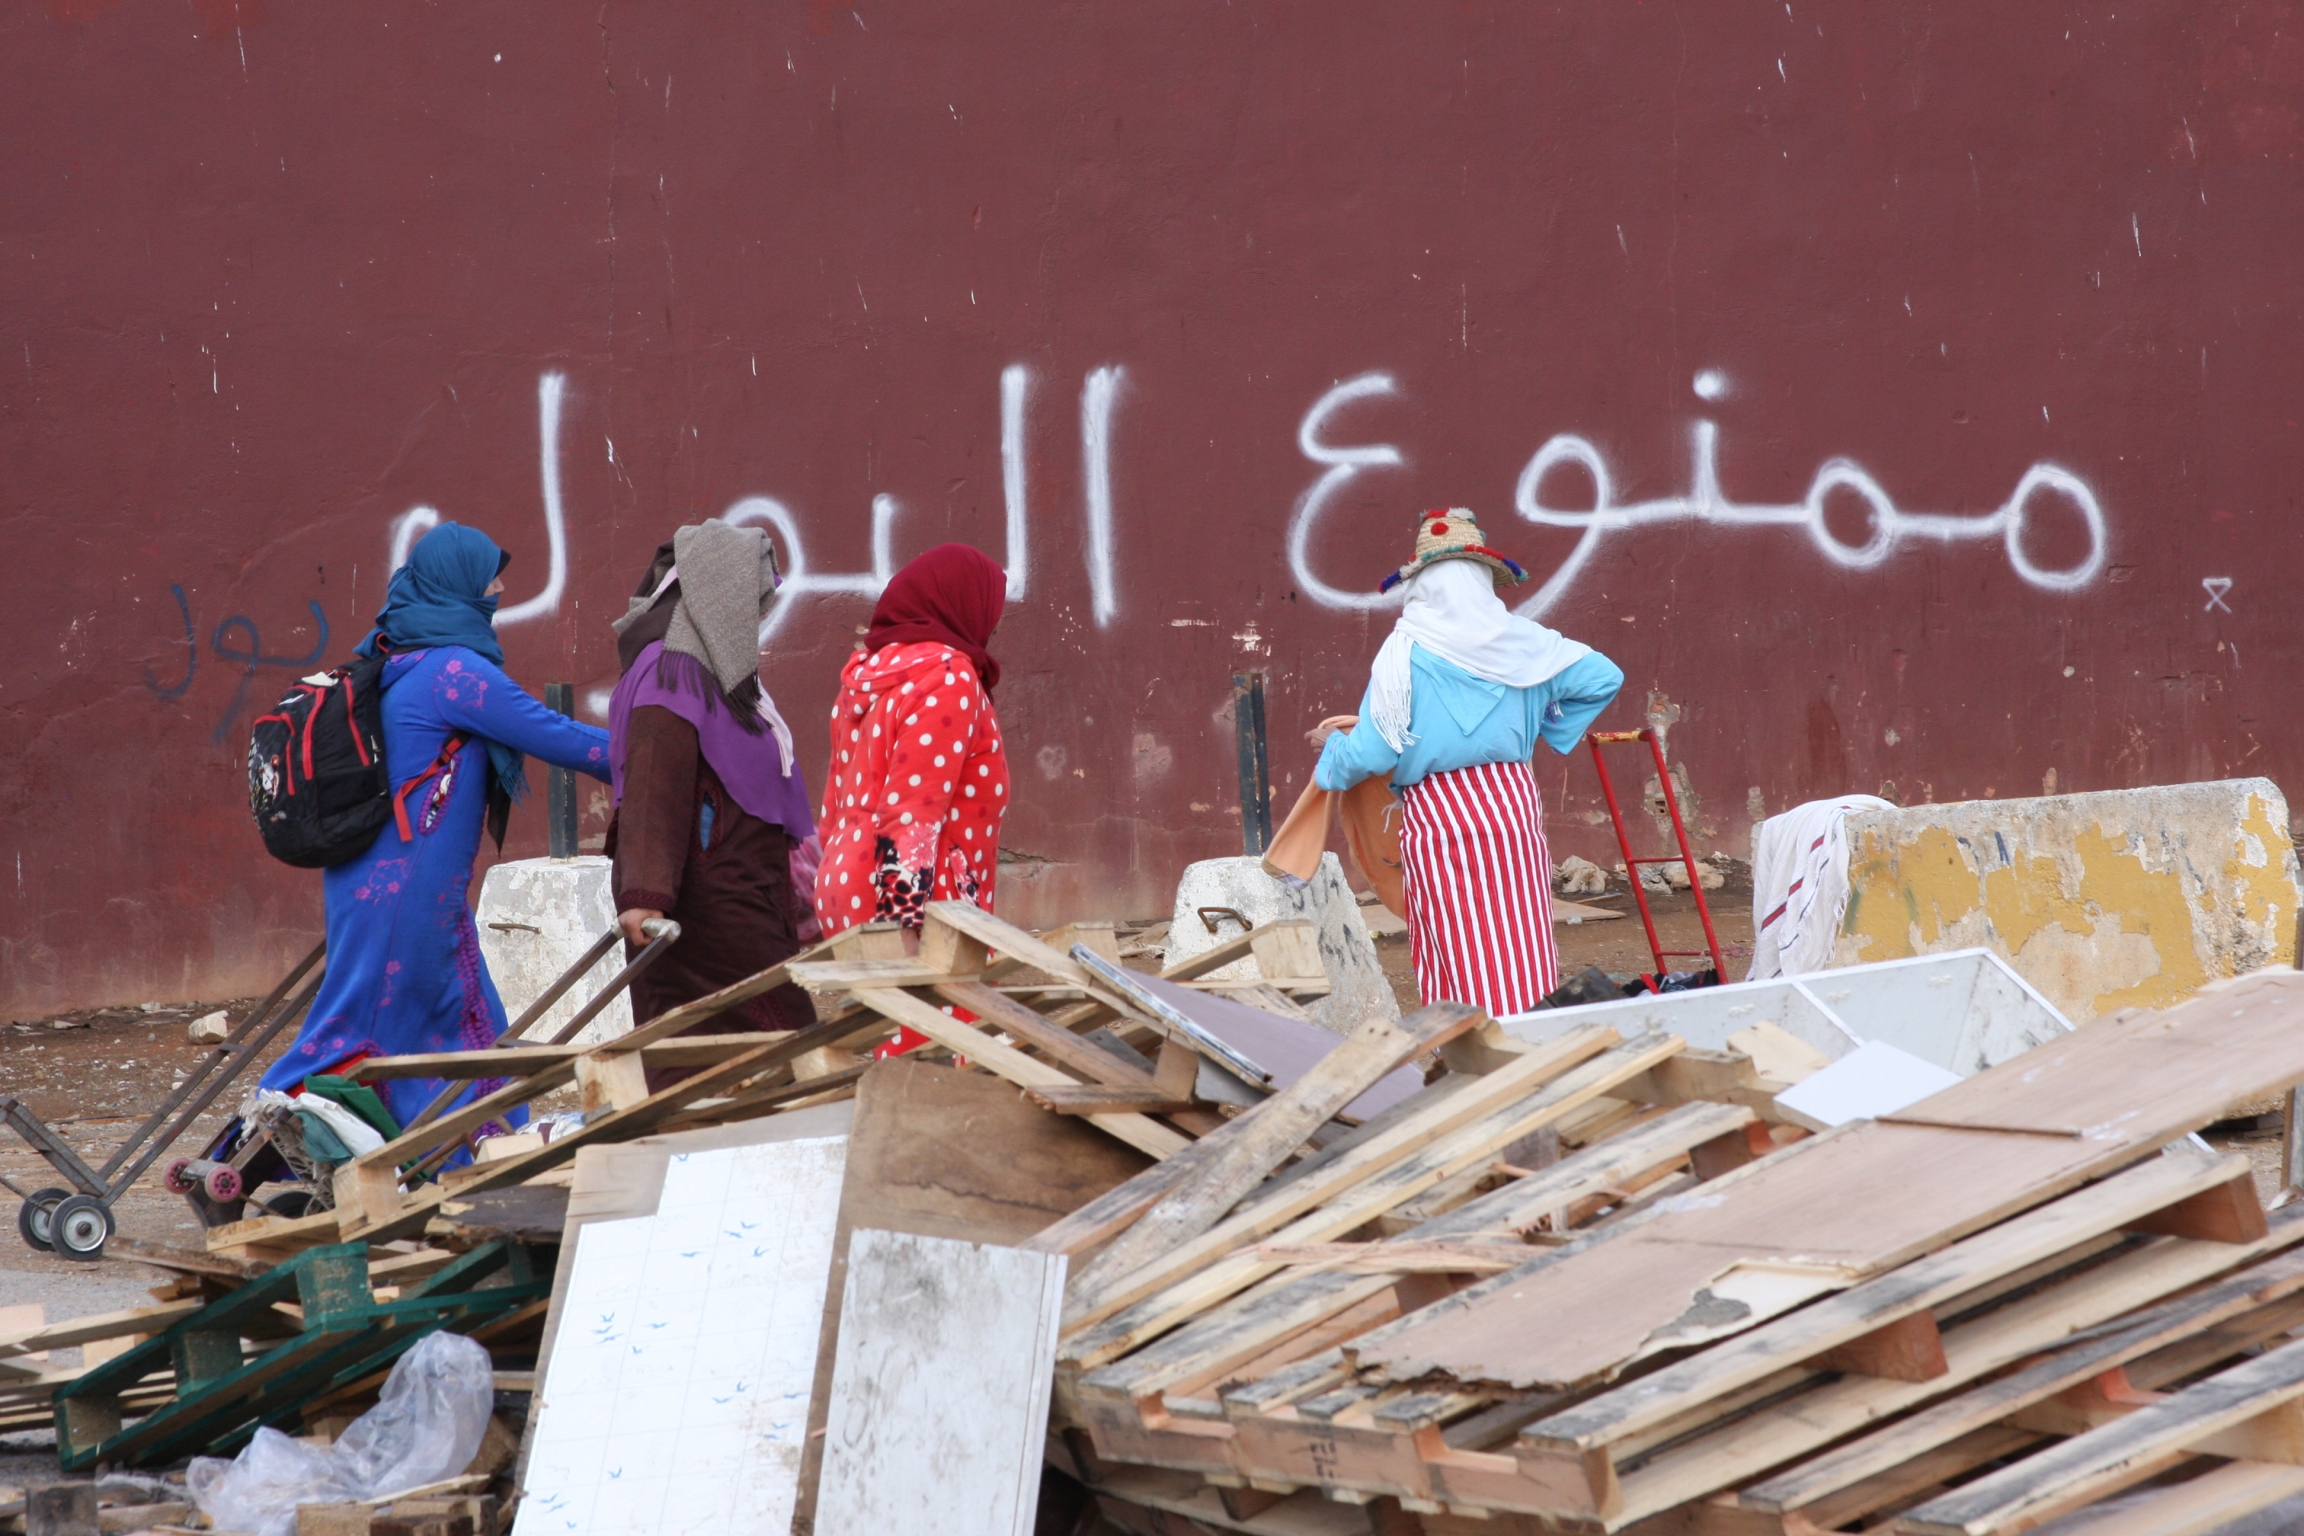 Women stand near pile of wooden debris against backdrop of red maroon wall with Arabic white letter graffitti.